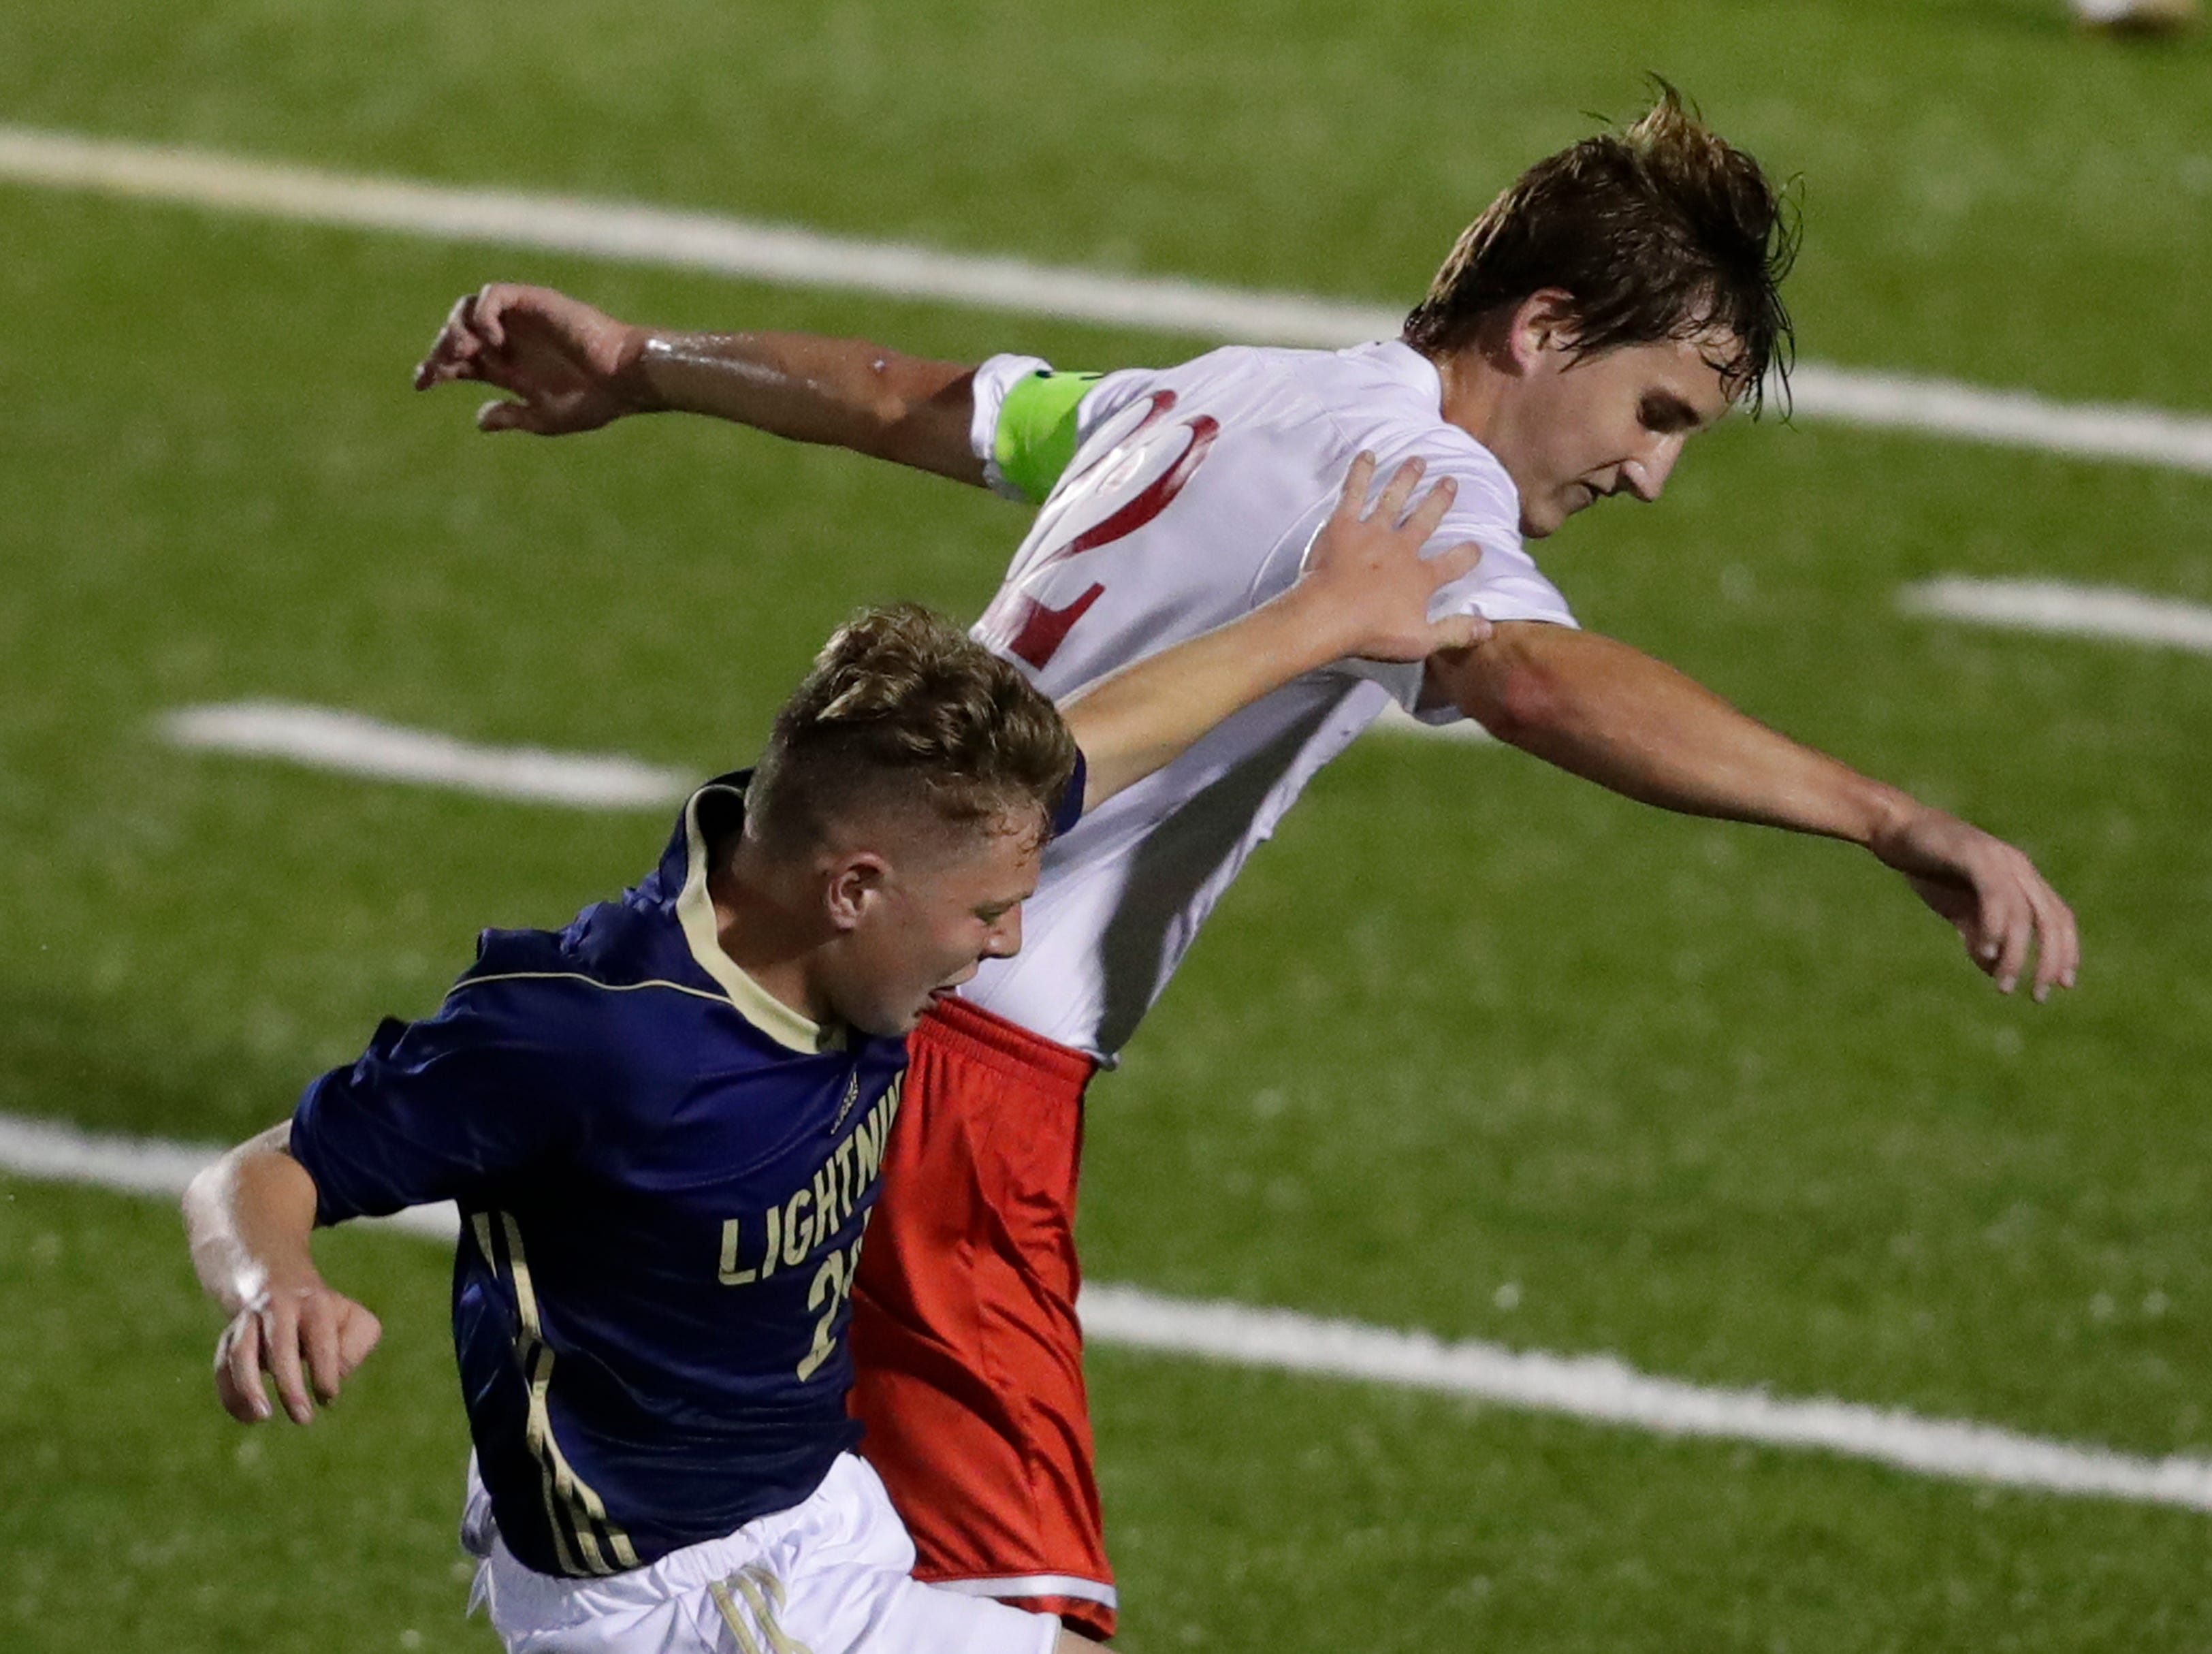 Appleton North High School's Aiden Greer, left, defends against Kimberly High School's Jon Carl during their boys soccer game Tuesday, Sept. 25, 2018, in Appleton, Wis. Dan Powers/USA TODAY NETWORK-Wisconsin